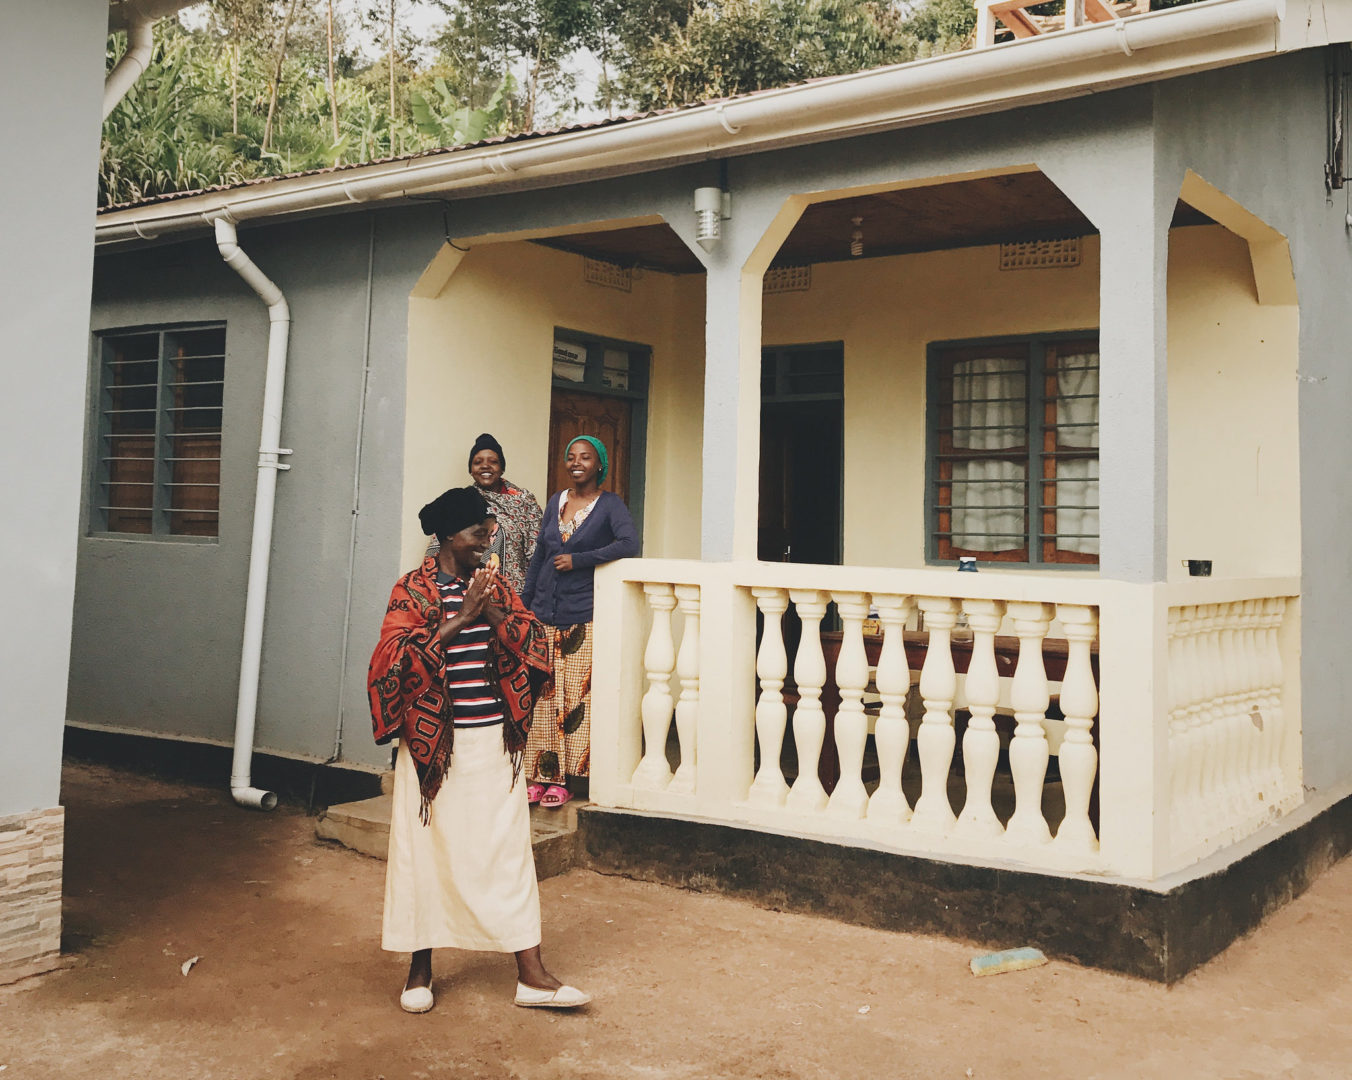 An improved home in Tanzania